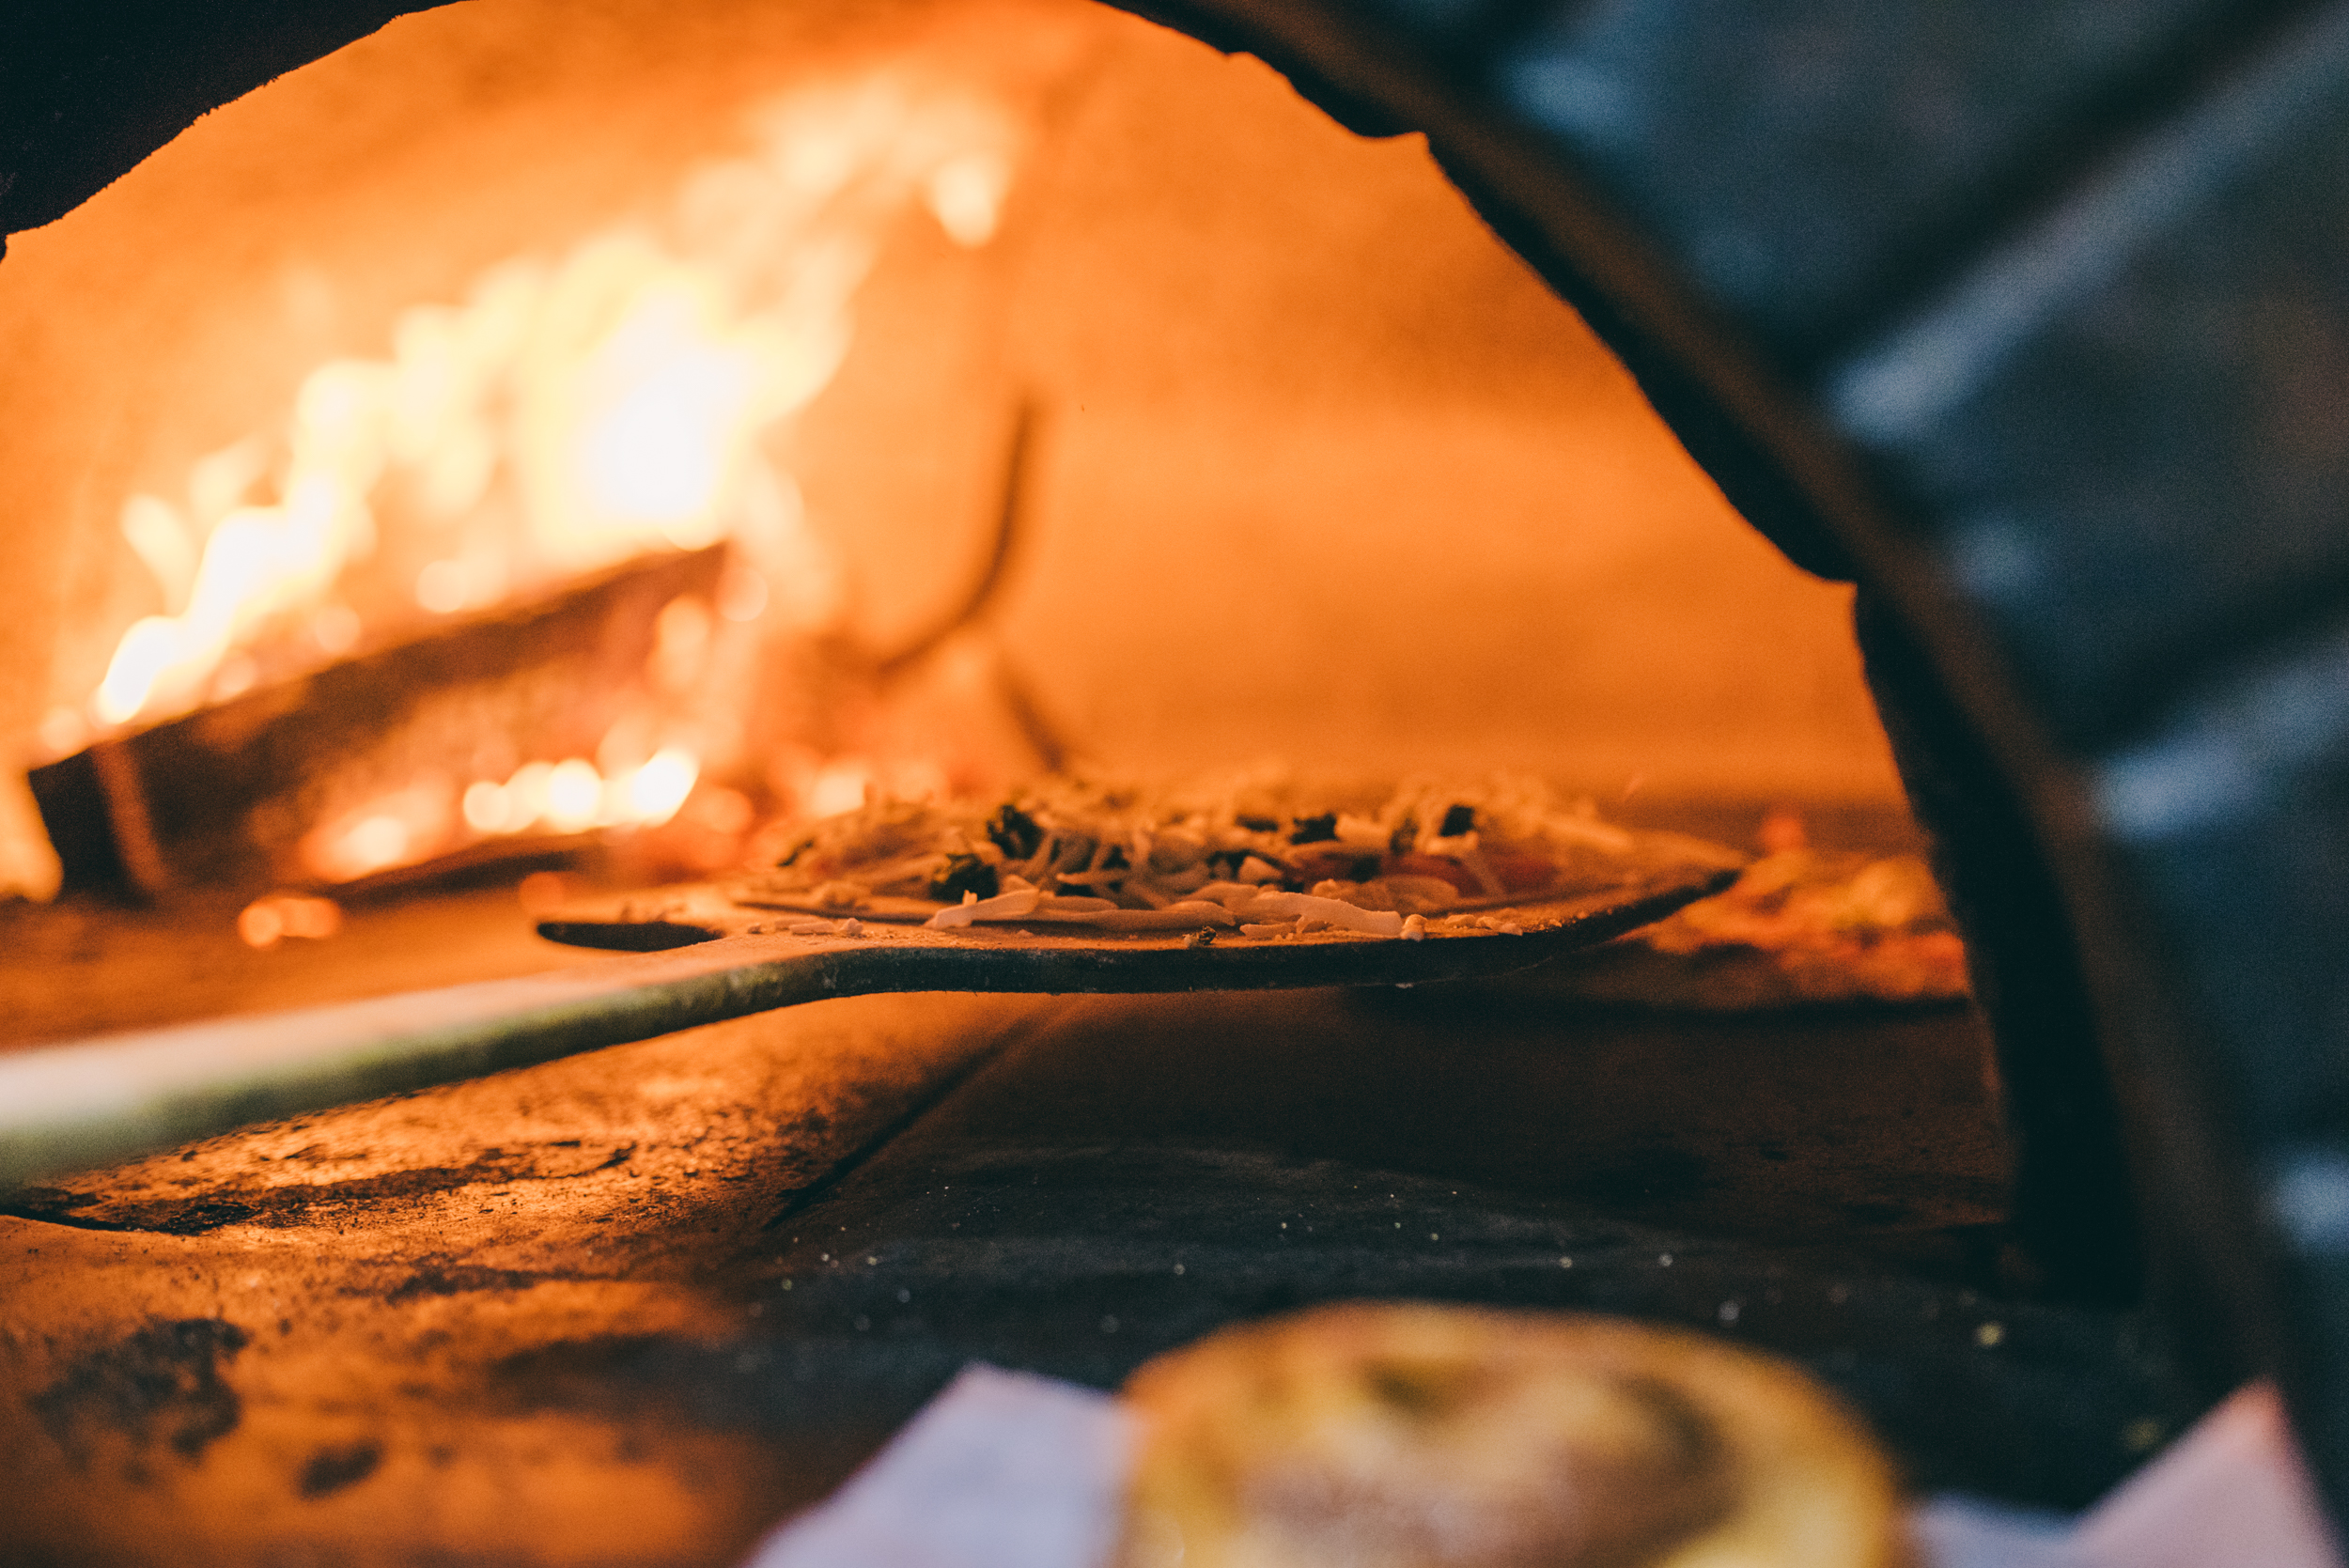 Wood-fired pizza at Ossorio's in Cocoa Village